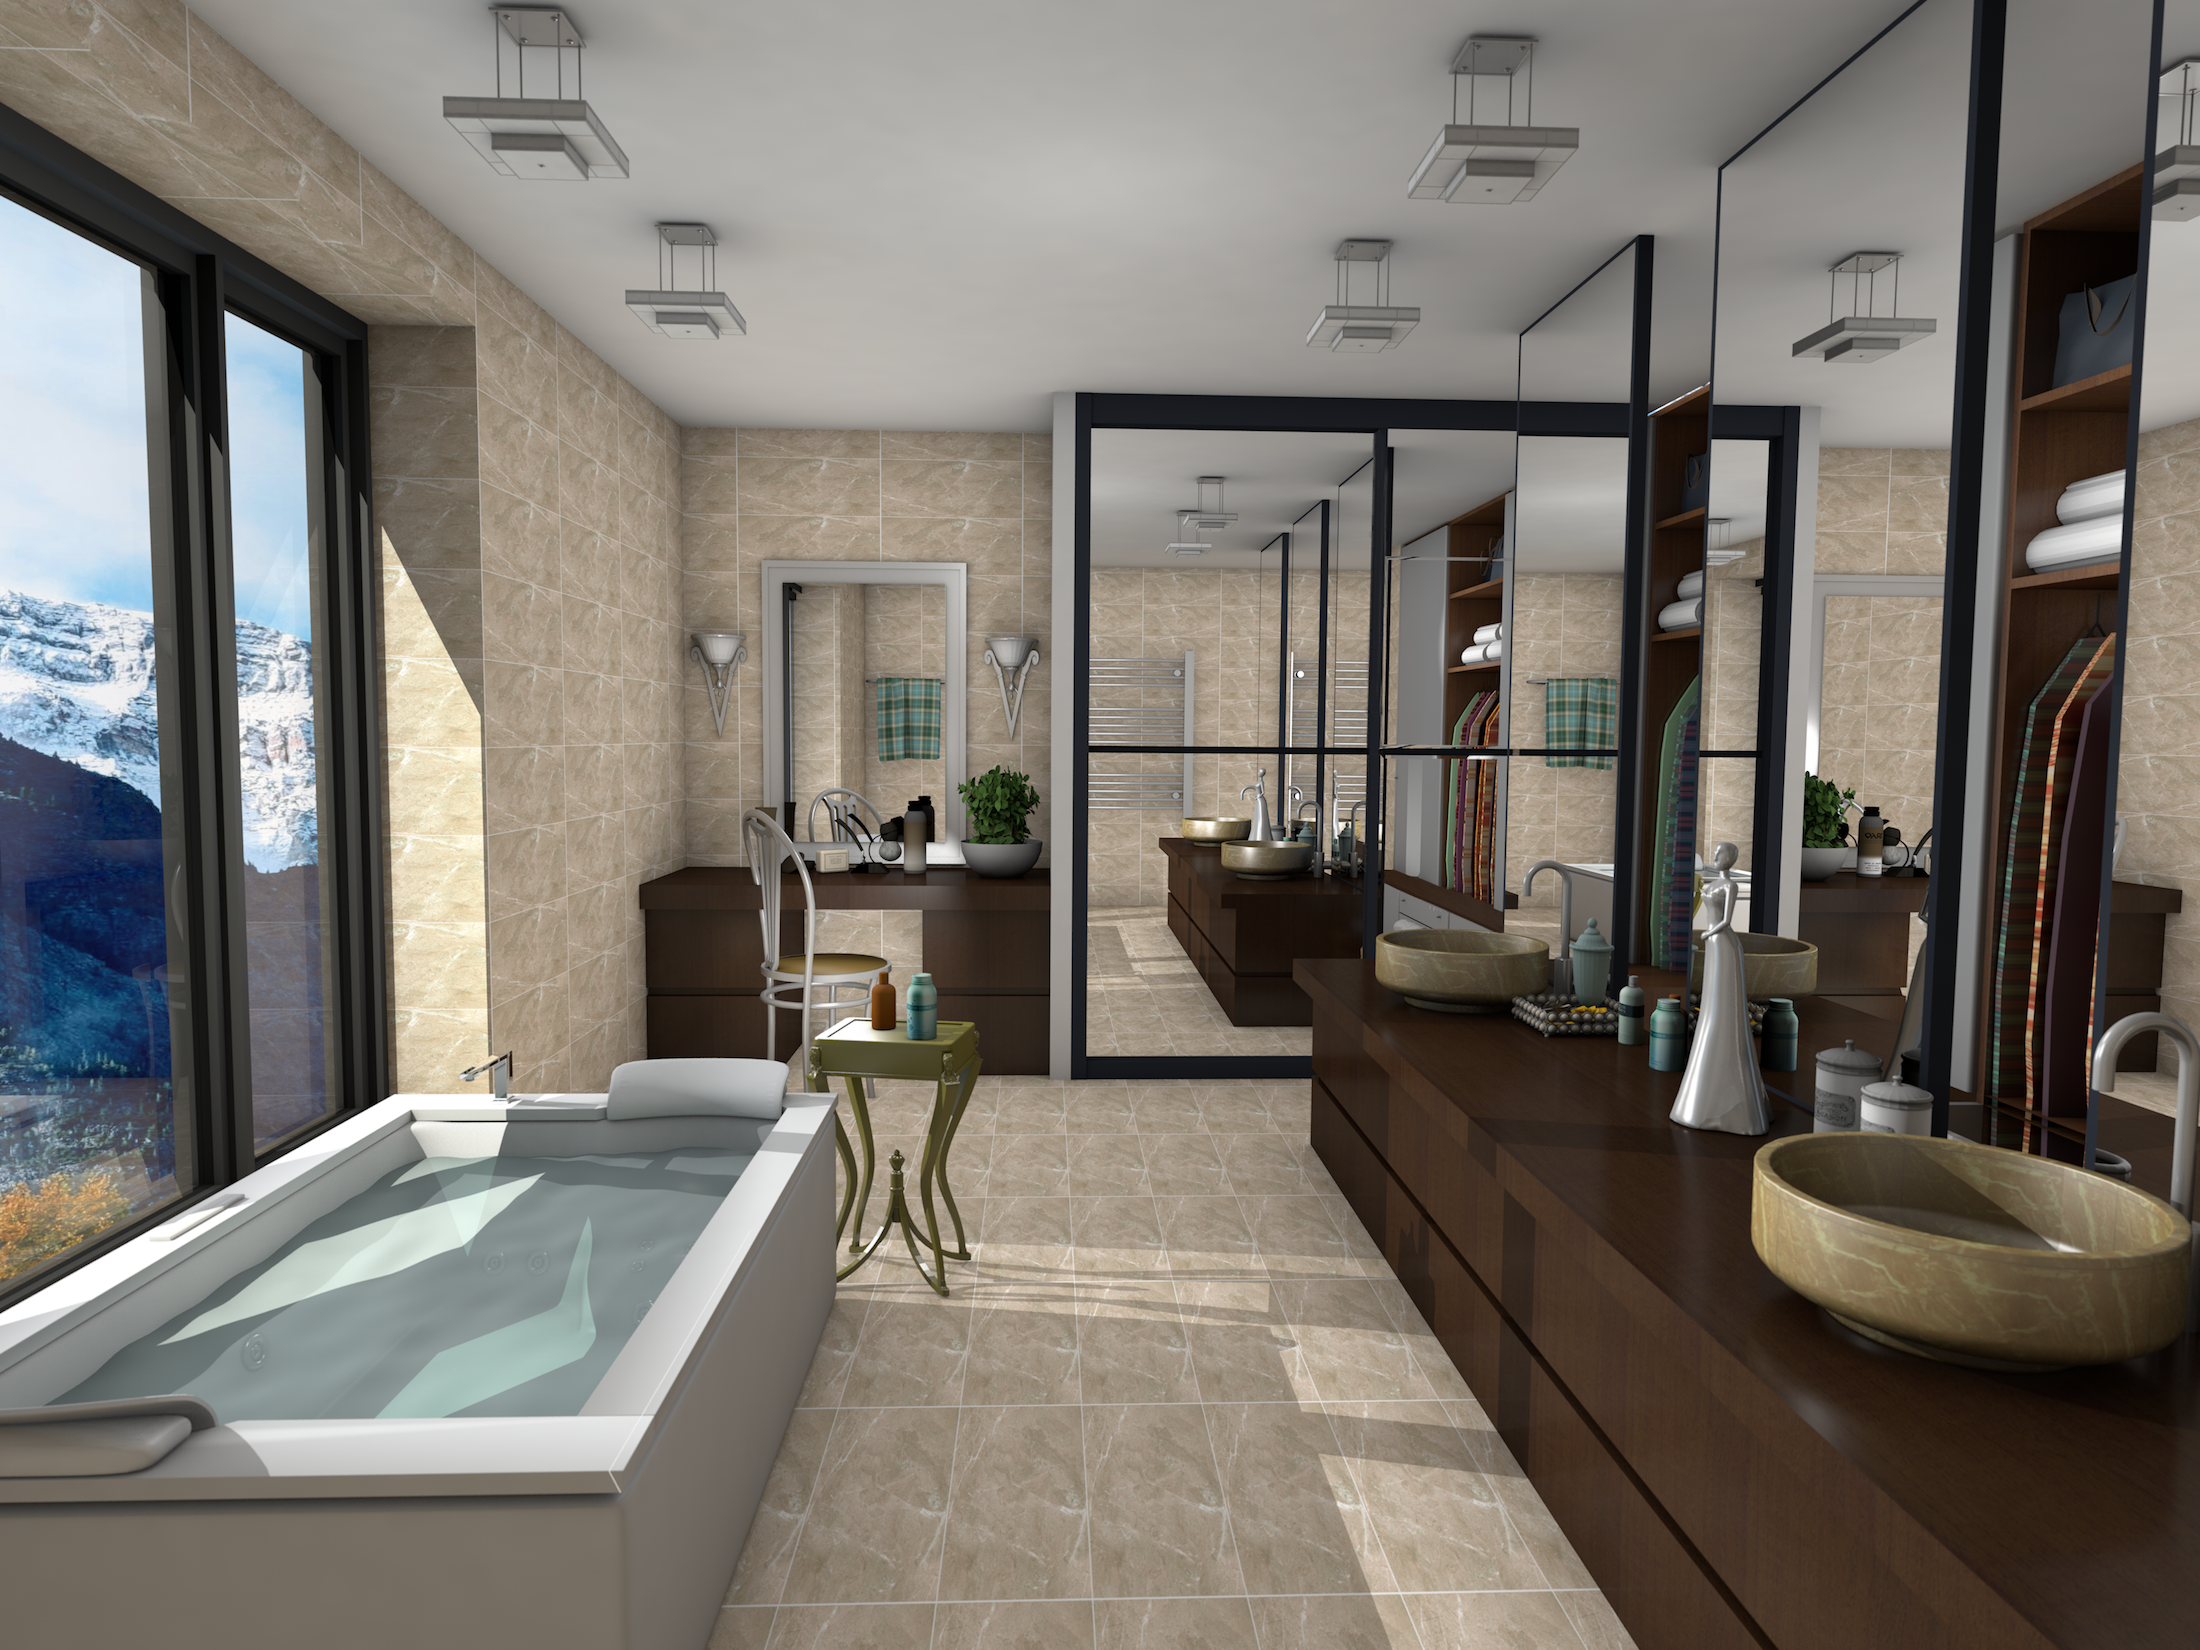 Look How Amazing A New Bath Looks In Livehome3d Homedesign Interiordesign Designap Interior Design Videos Interior Design Software Bathroom Design Software